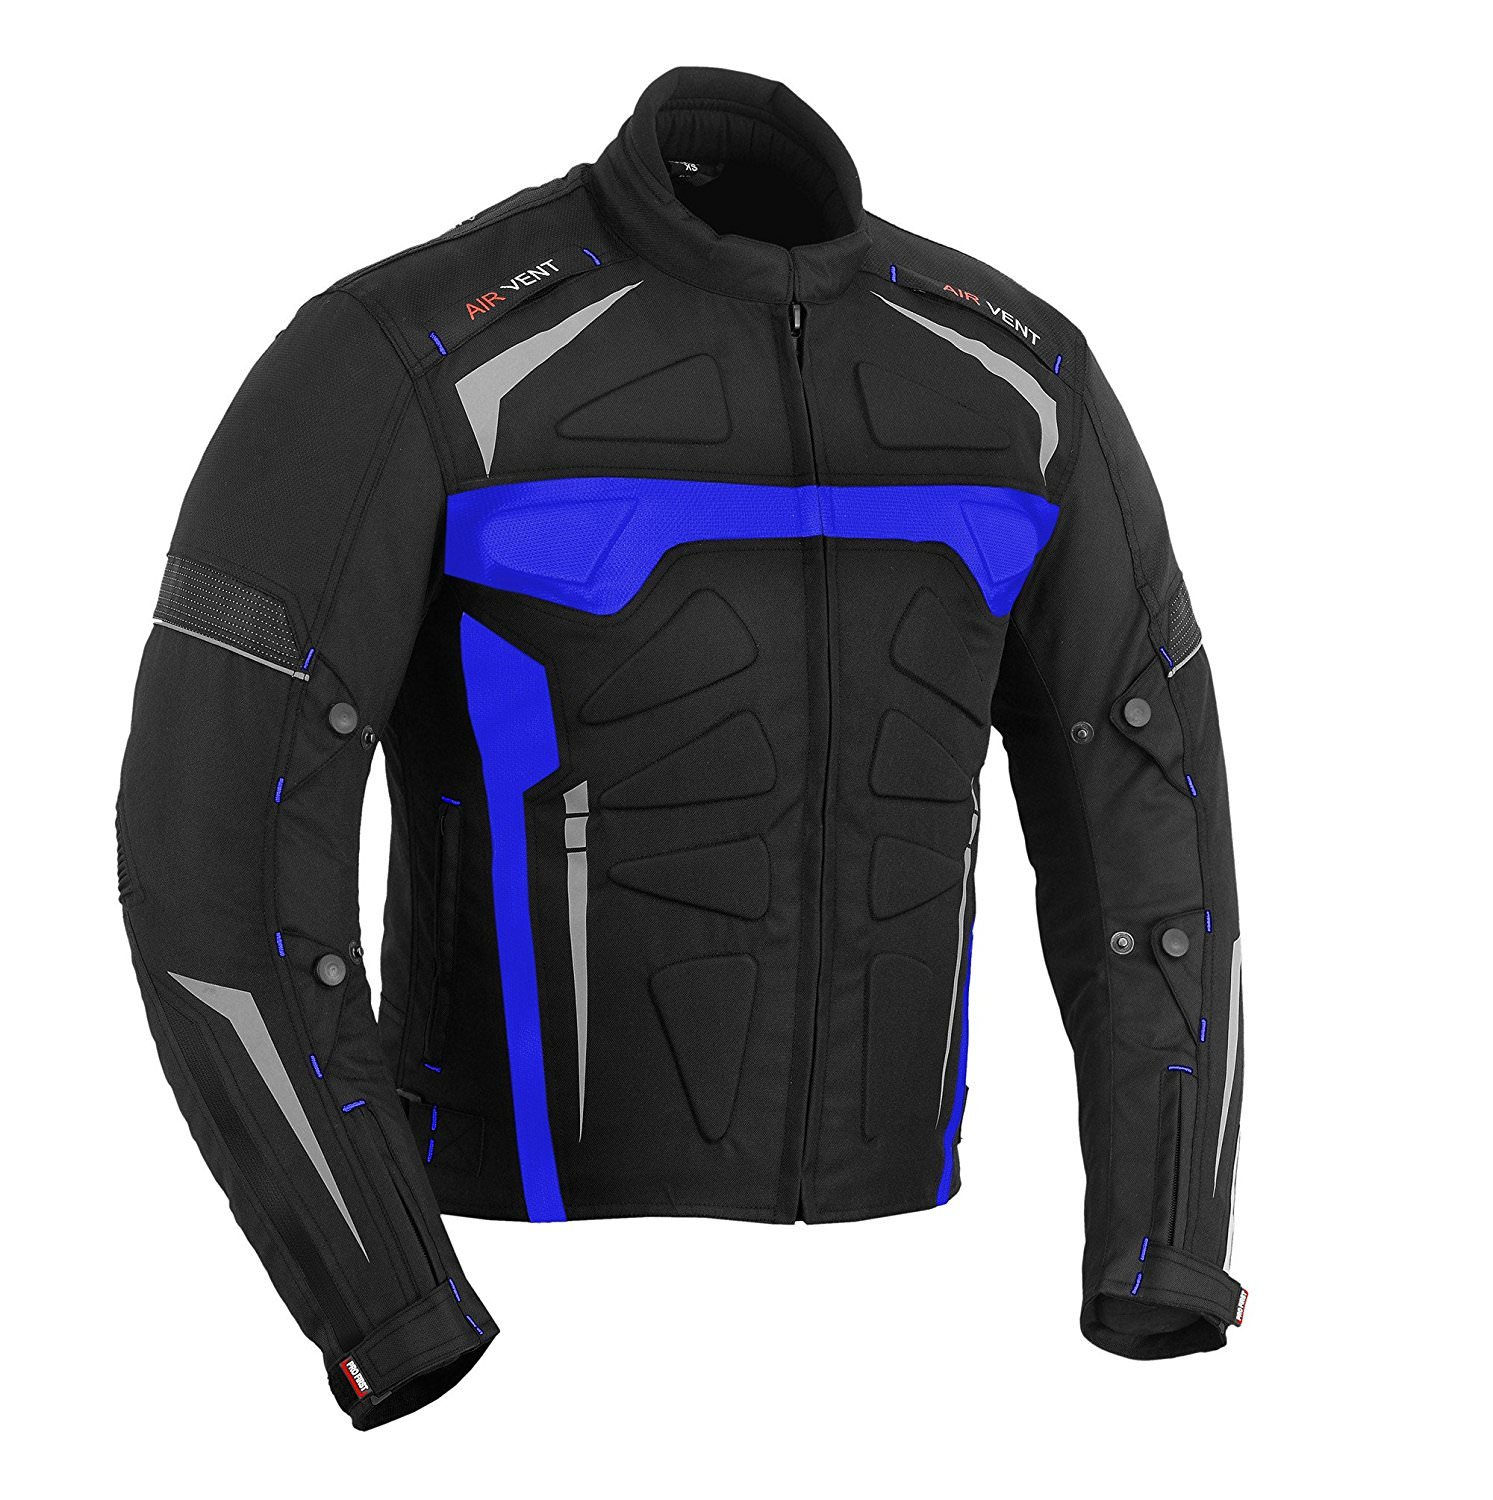 Motorbike Jackets Motorcycle Bike Rider Waterproof High Quality Designer Coat Shirt Gears Bartack Sewed All Weather Jacket for Mens Adults Boys 4X Large